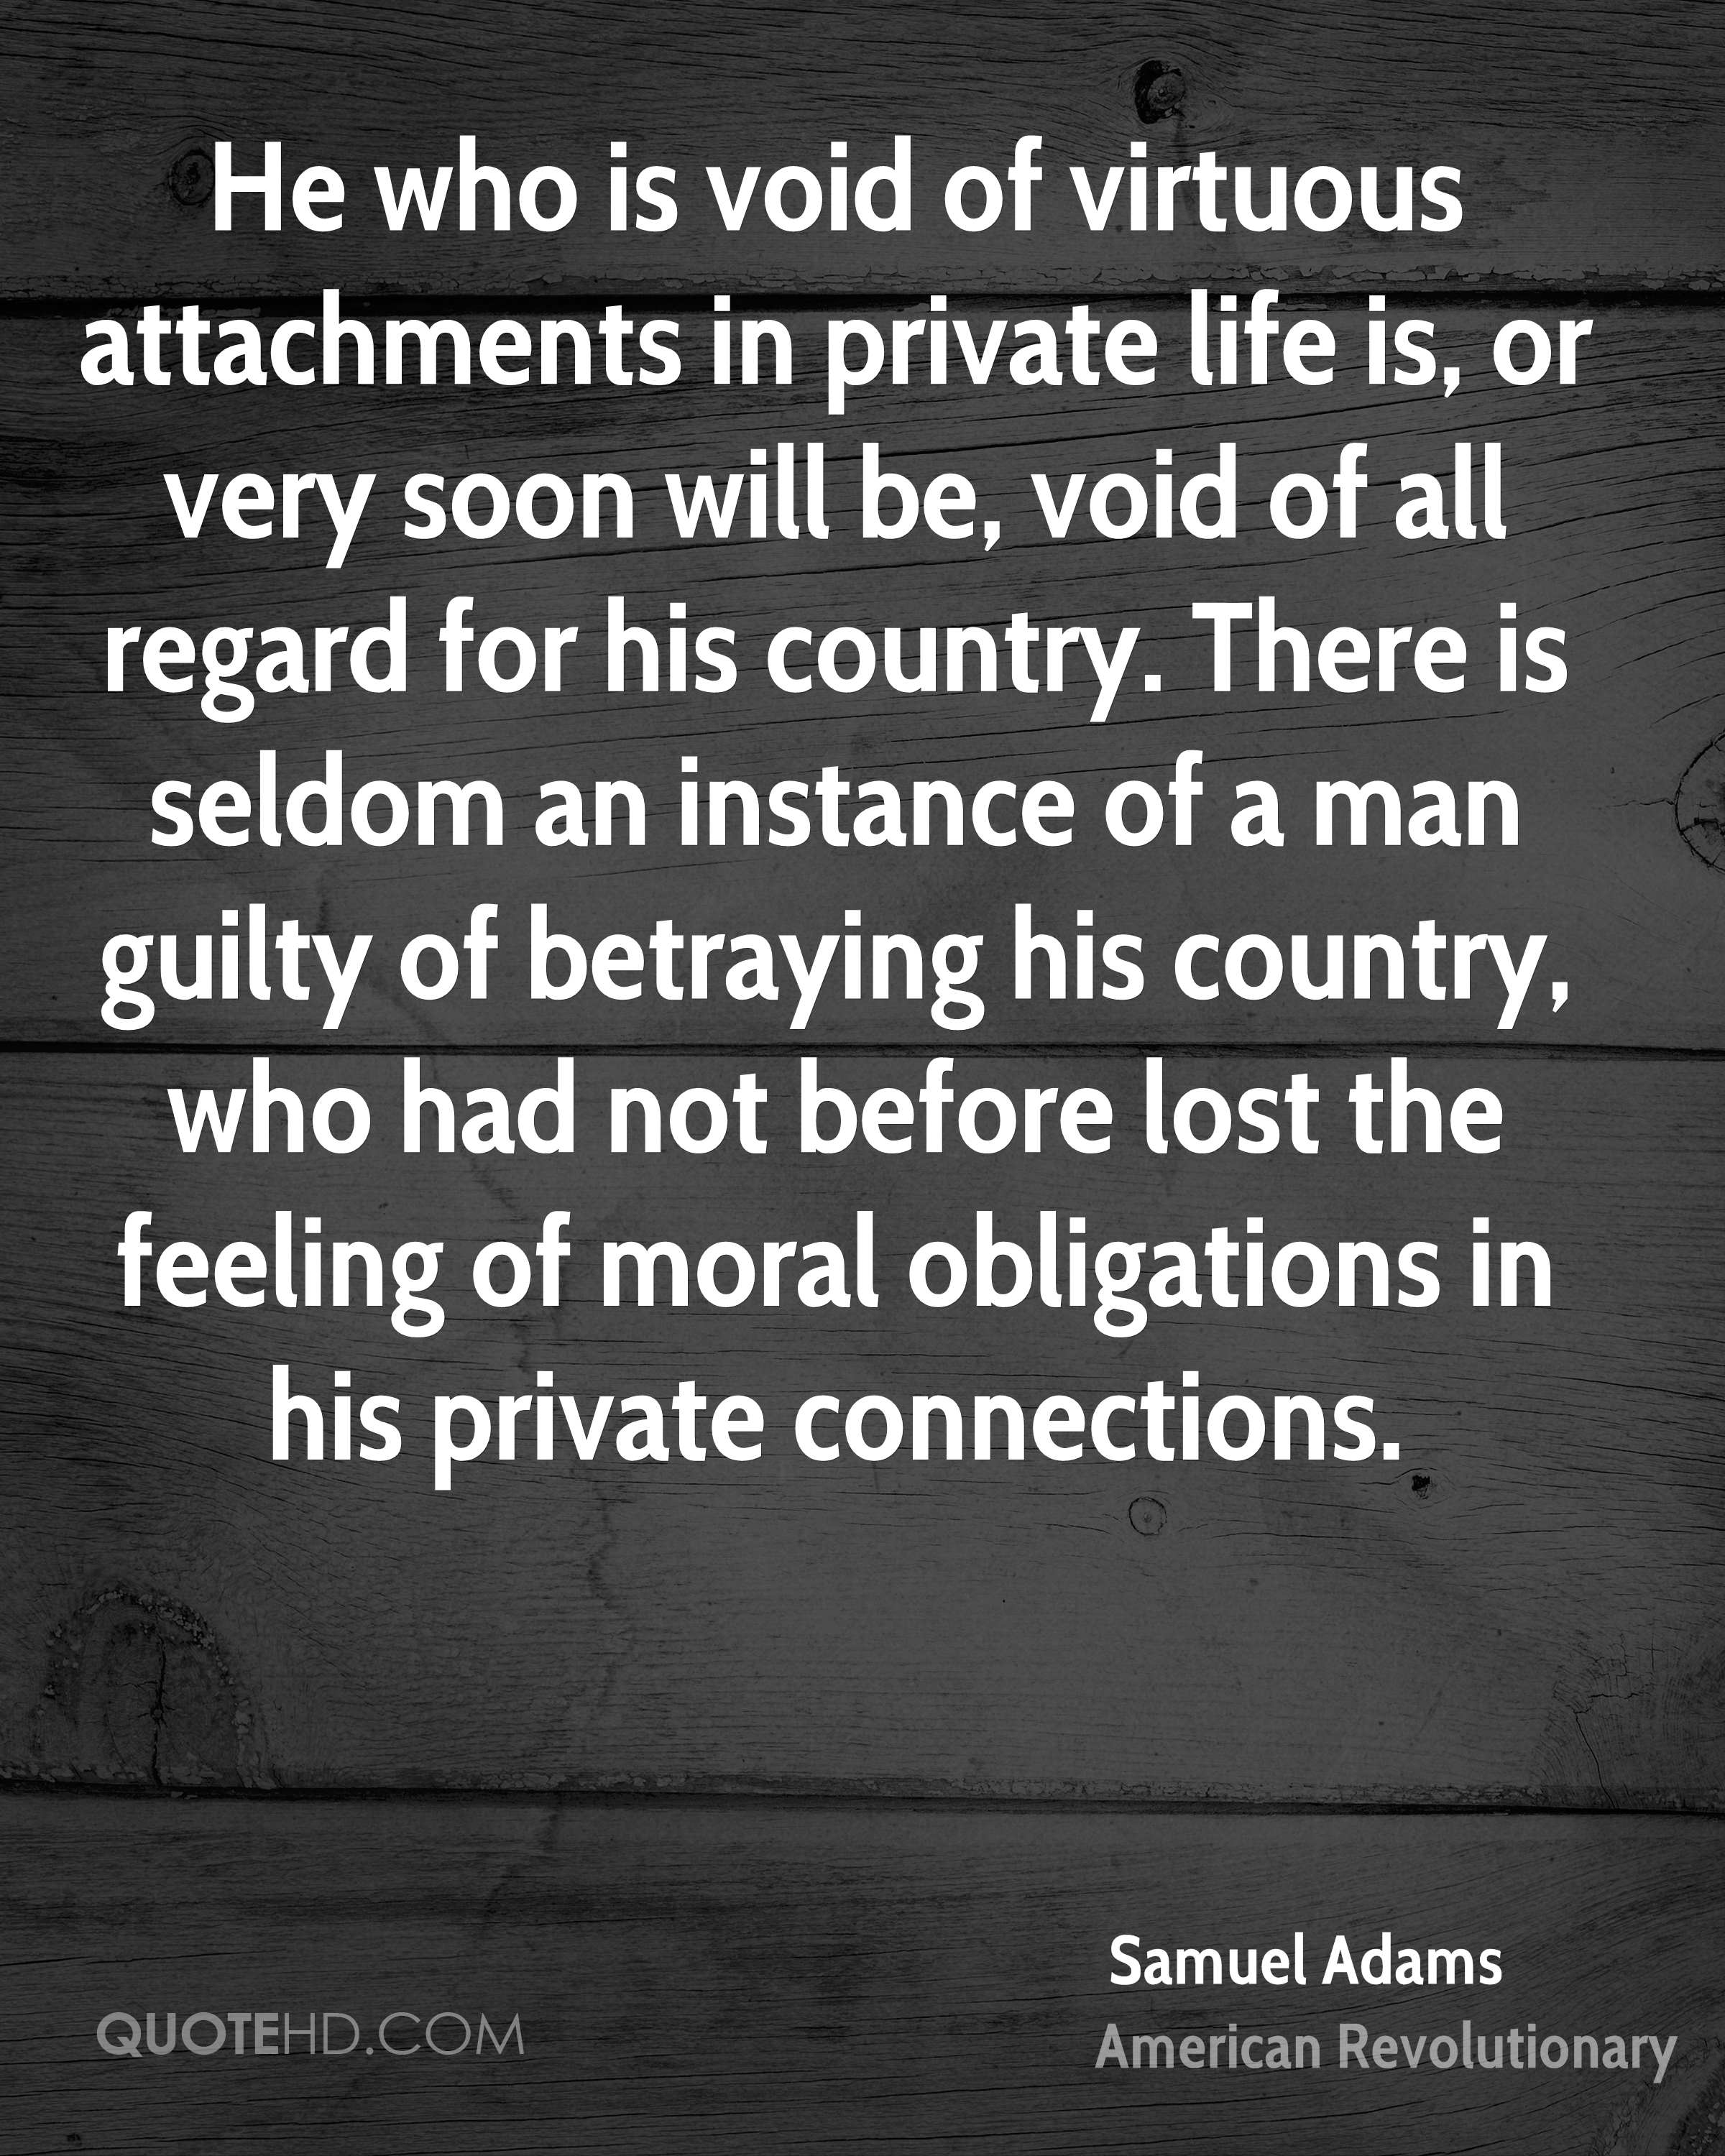 He who is void of virtuous attachments in private life is, or very soon will be, void of all regard for his country. There is seldom an instance of a man guilty of betraying his country, who had not before lost the feeling of moral obligations in his private connections.